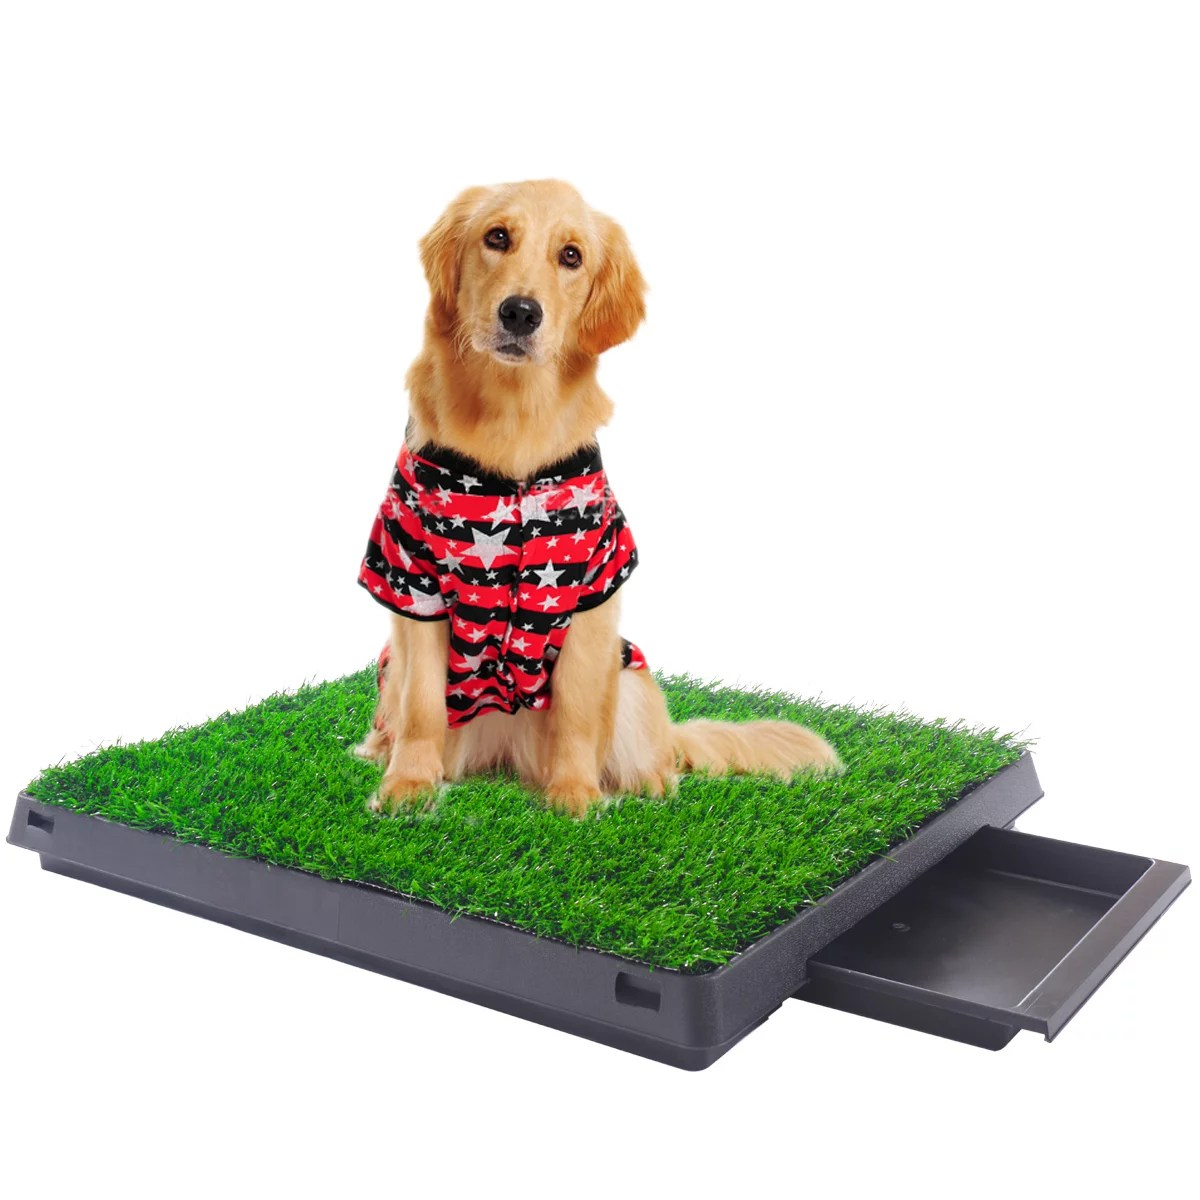 veryke artificial grass dog potty grass puppy potty trainer fake grass turf for dogs potty training area patio lawn decoration 25 x20